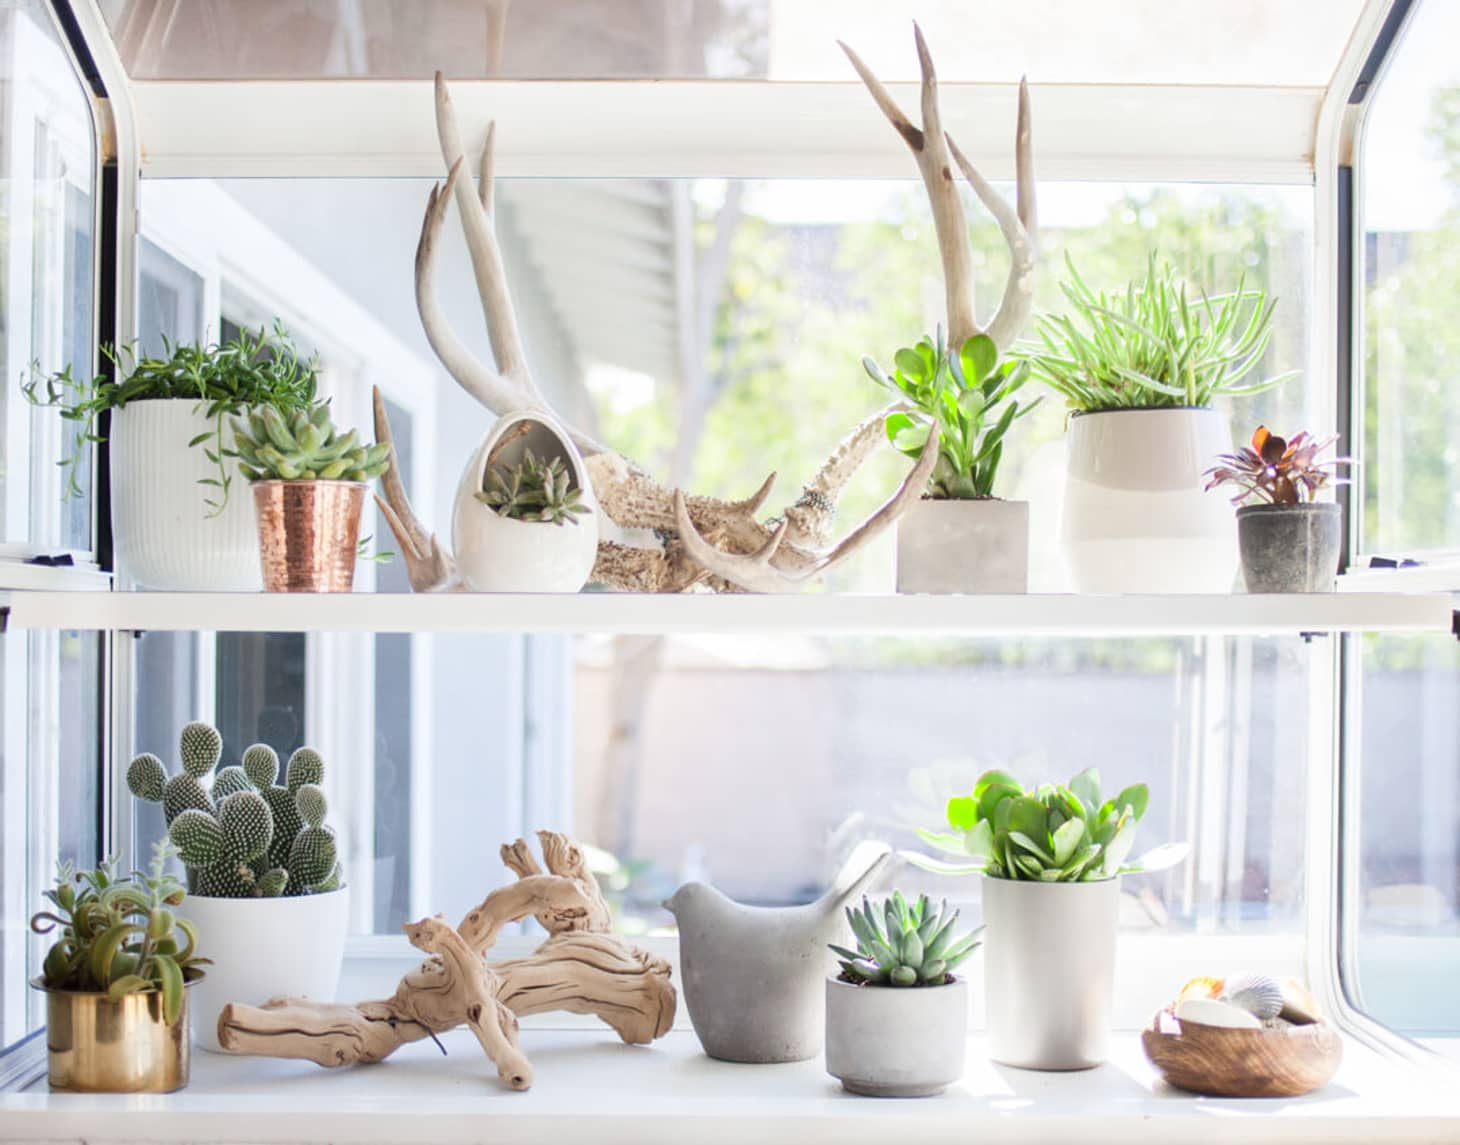 Use Your Windowsills For More Storage Usable Surface Area